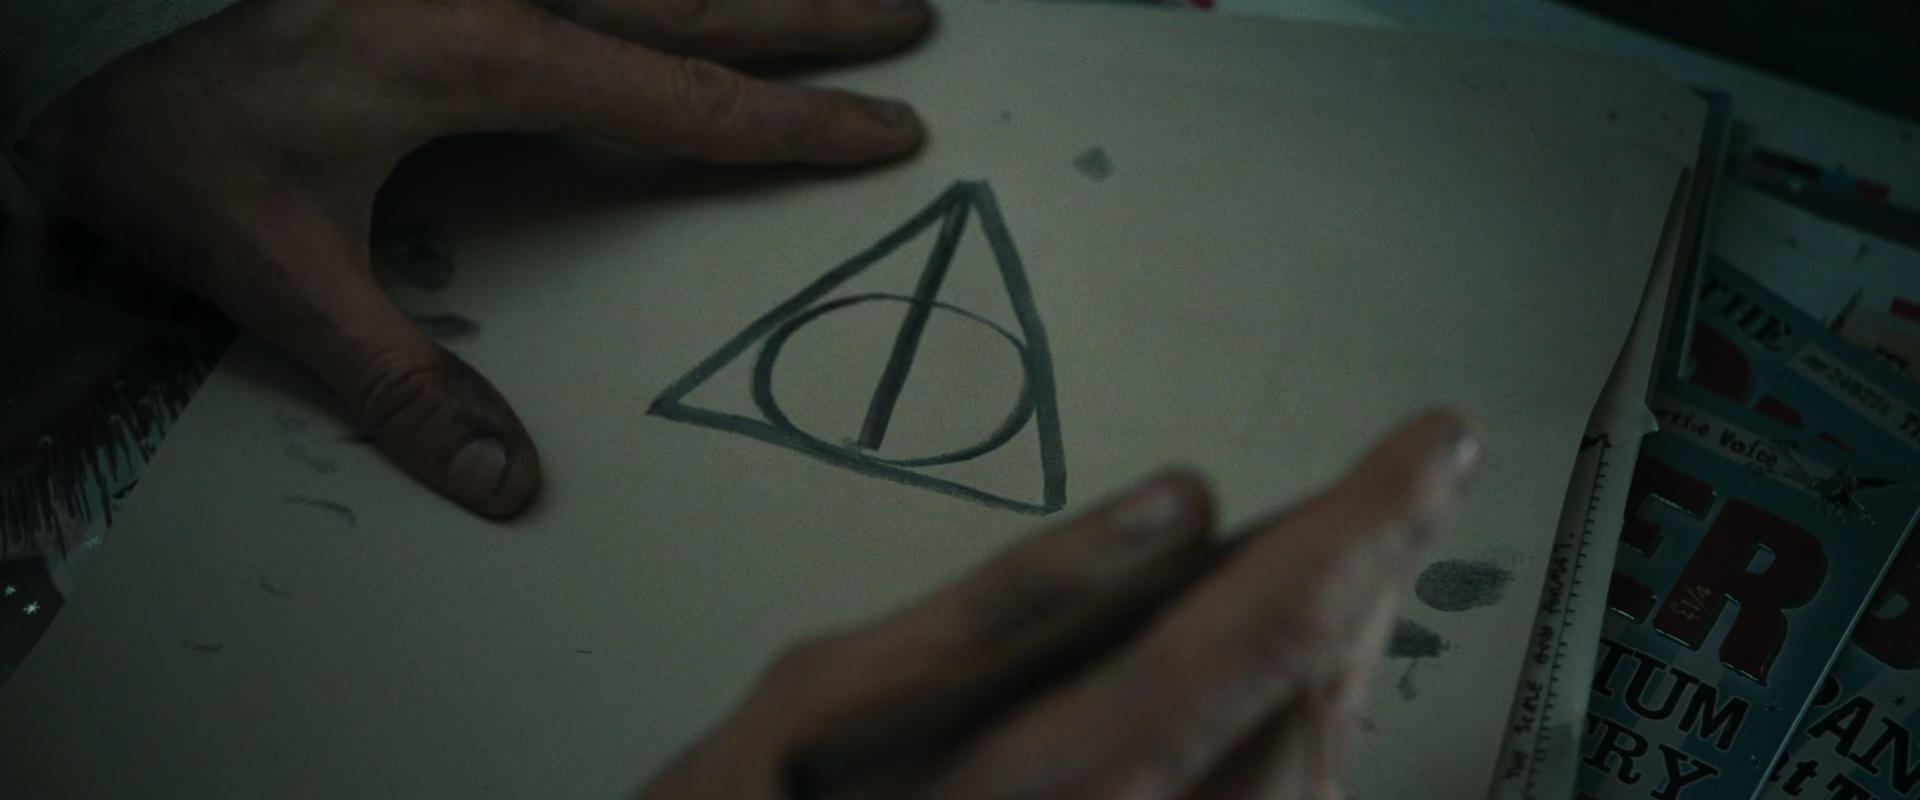 File:The sign of the Deathly Hallows.JPG